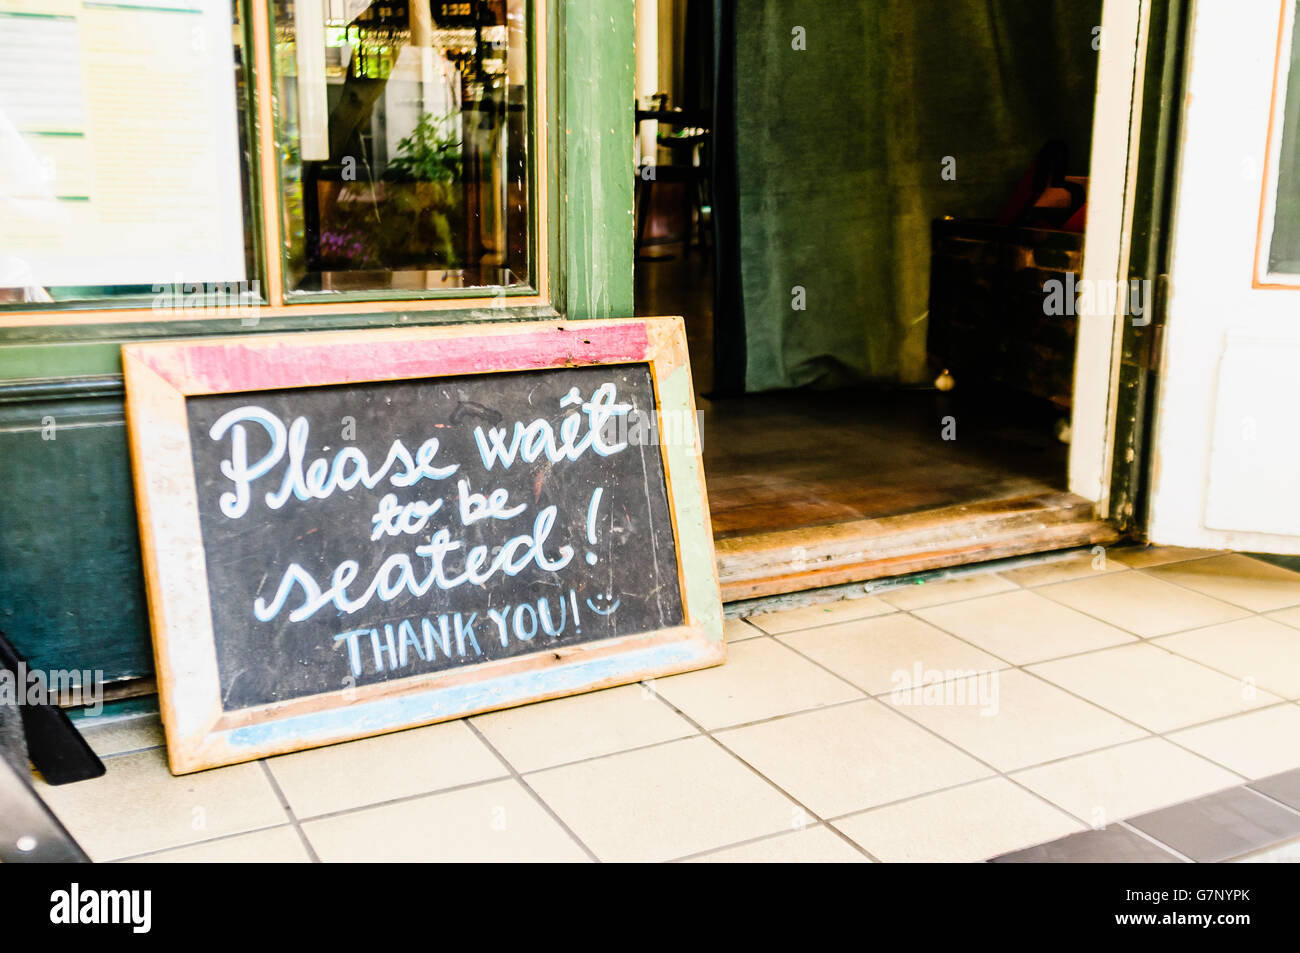 Sign Outside A Restaurant Saying Please Wait To Be Seated Thank